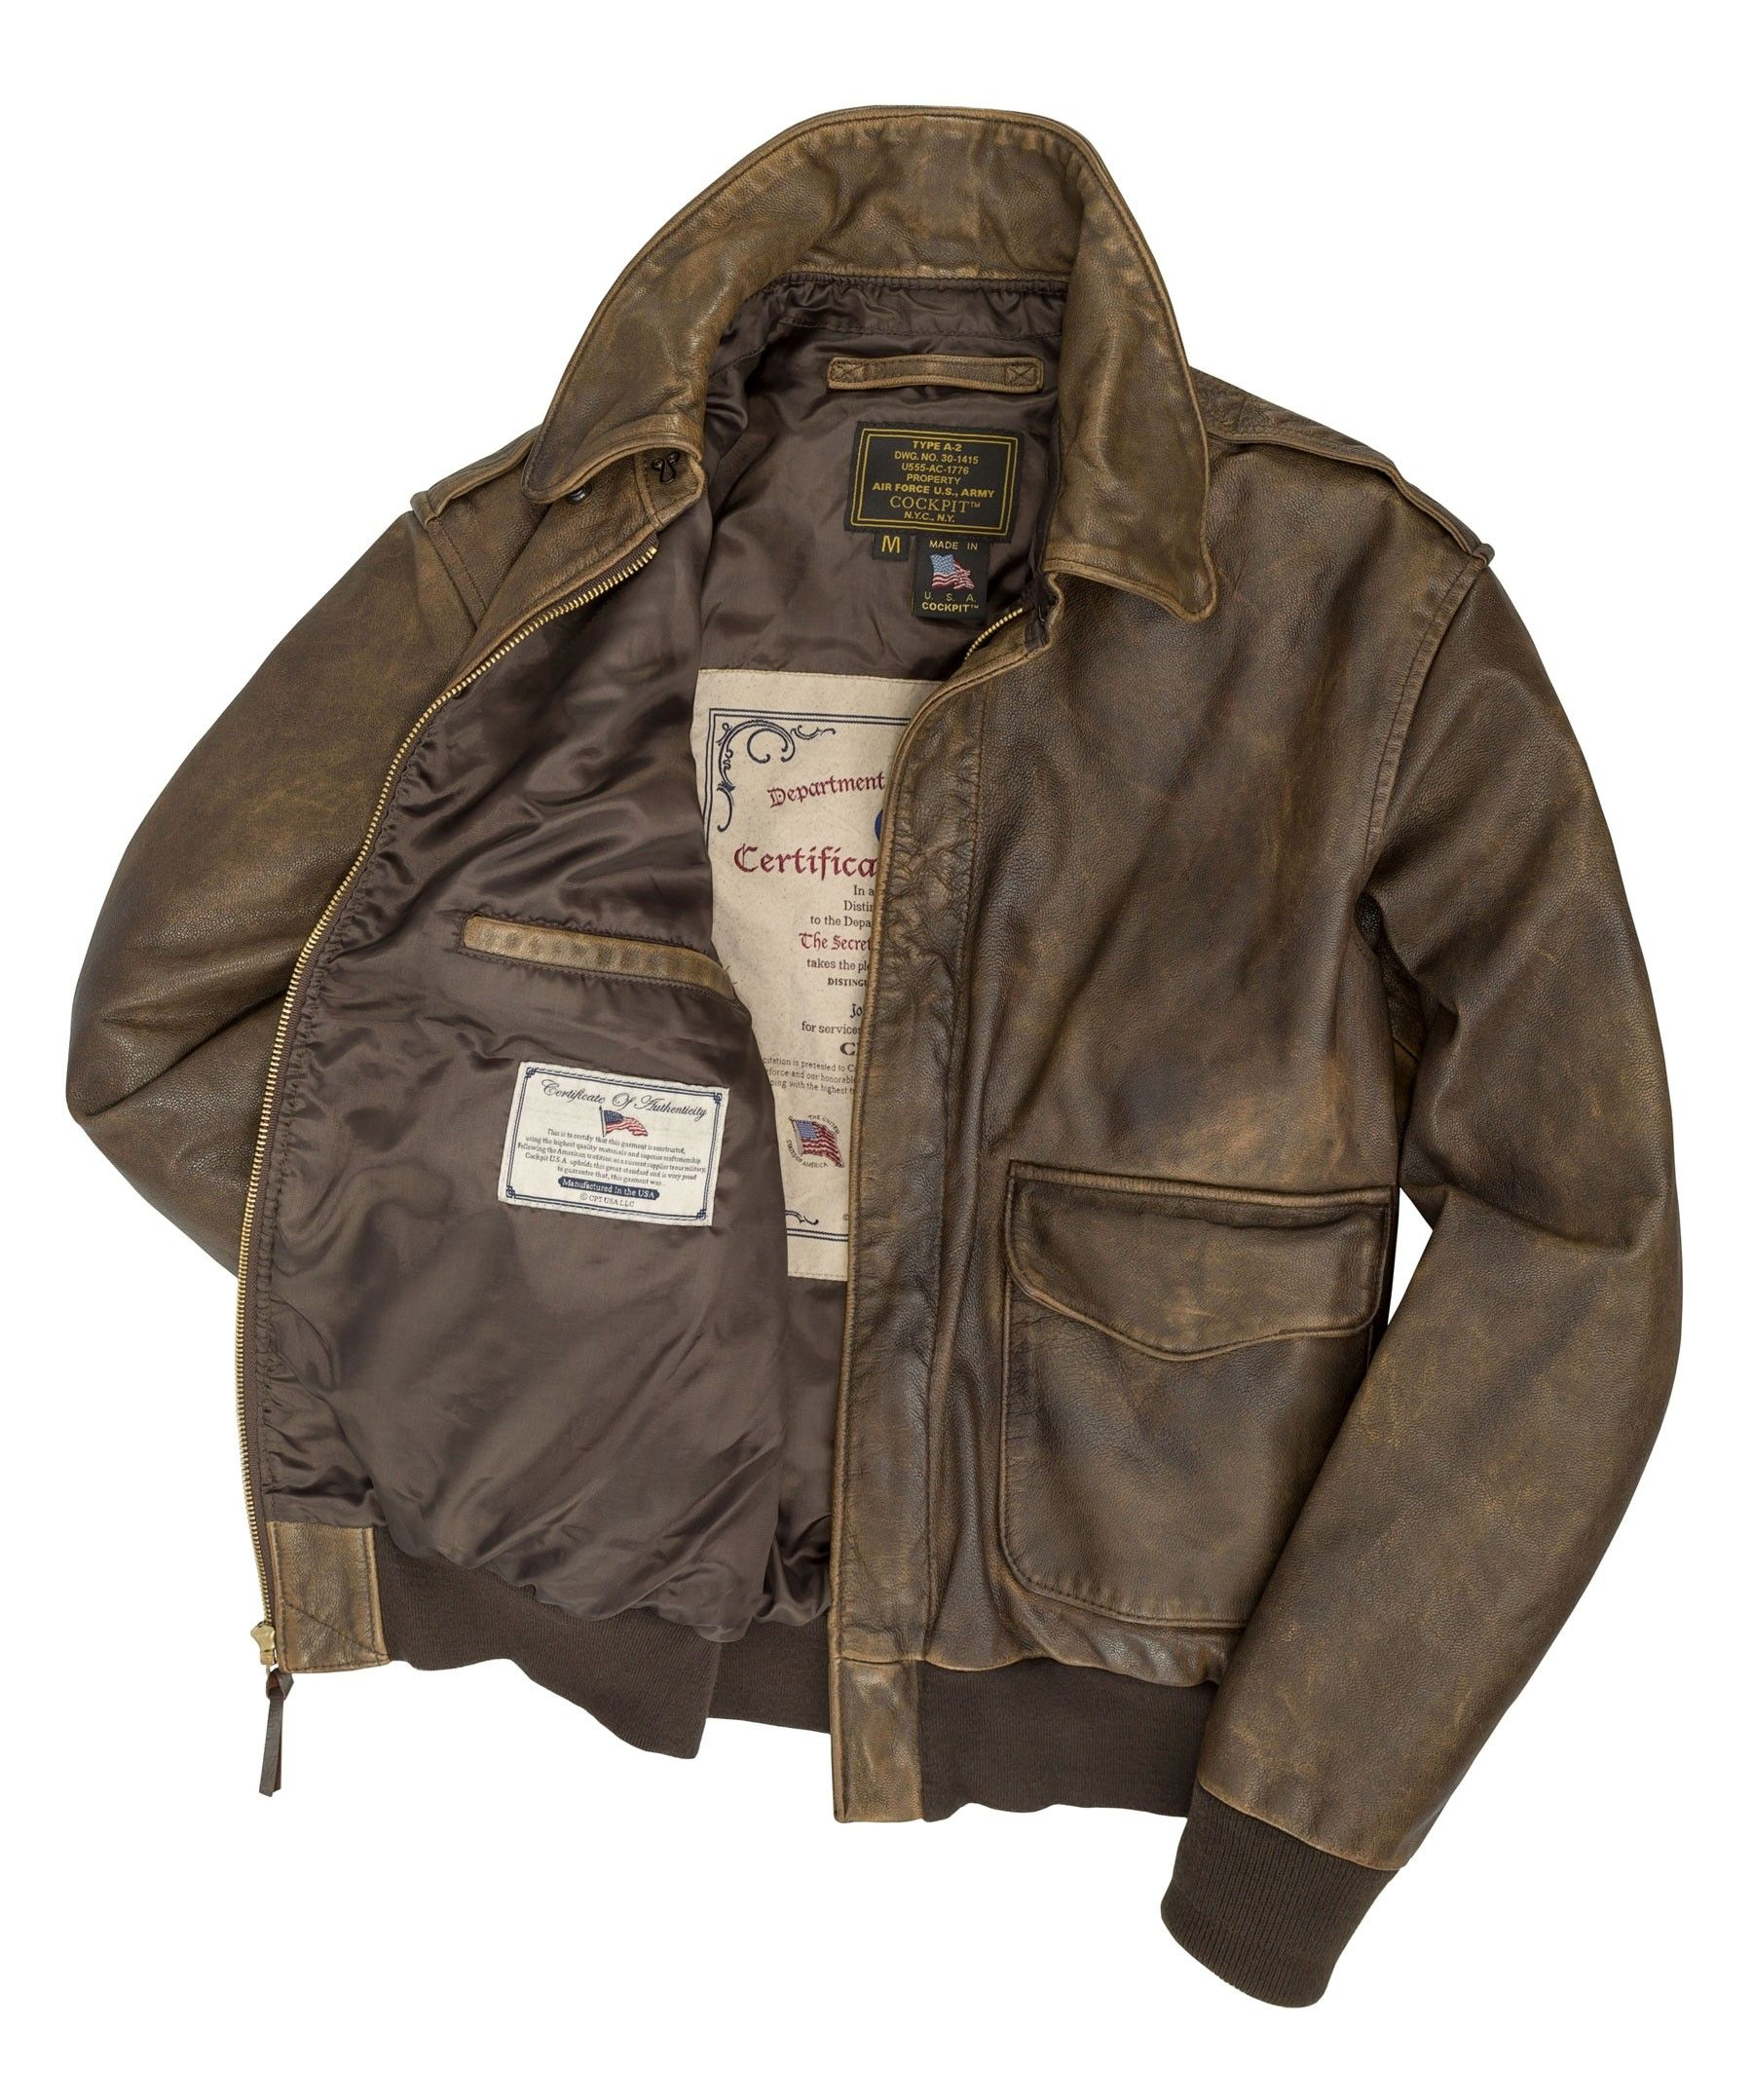 Mustang A 2 Jacket C Cockpit Usa Leather Flight Jacket Mens Jackets Flight Jacket [ 2156 x 1800 Pixel ]